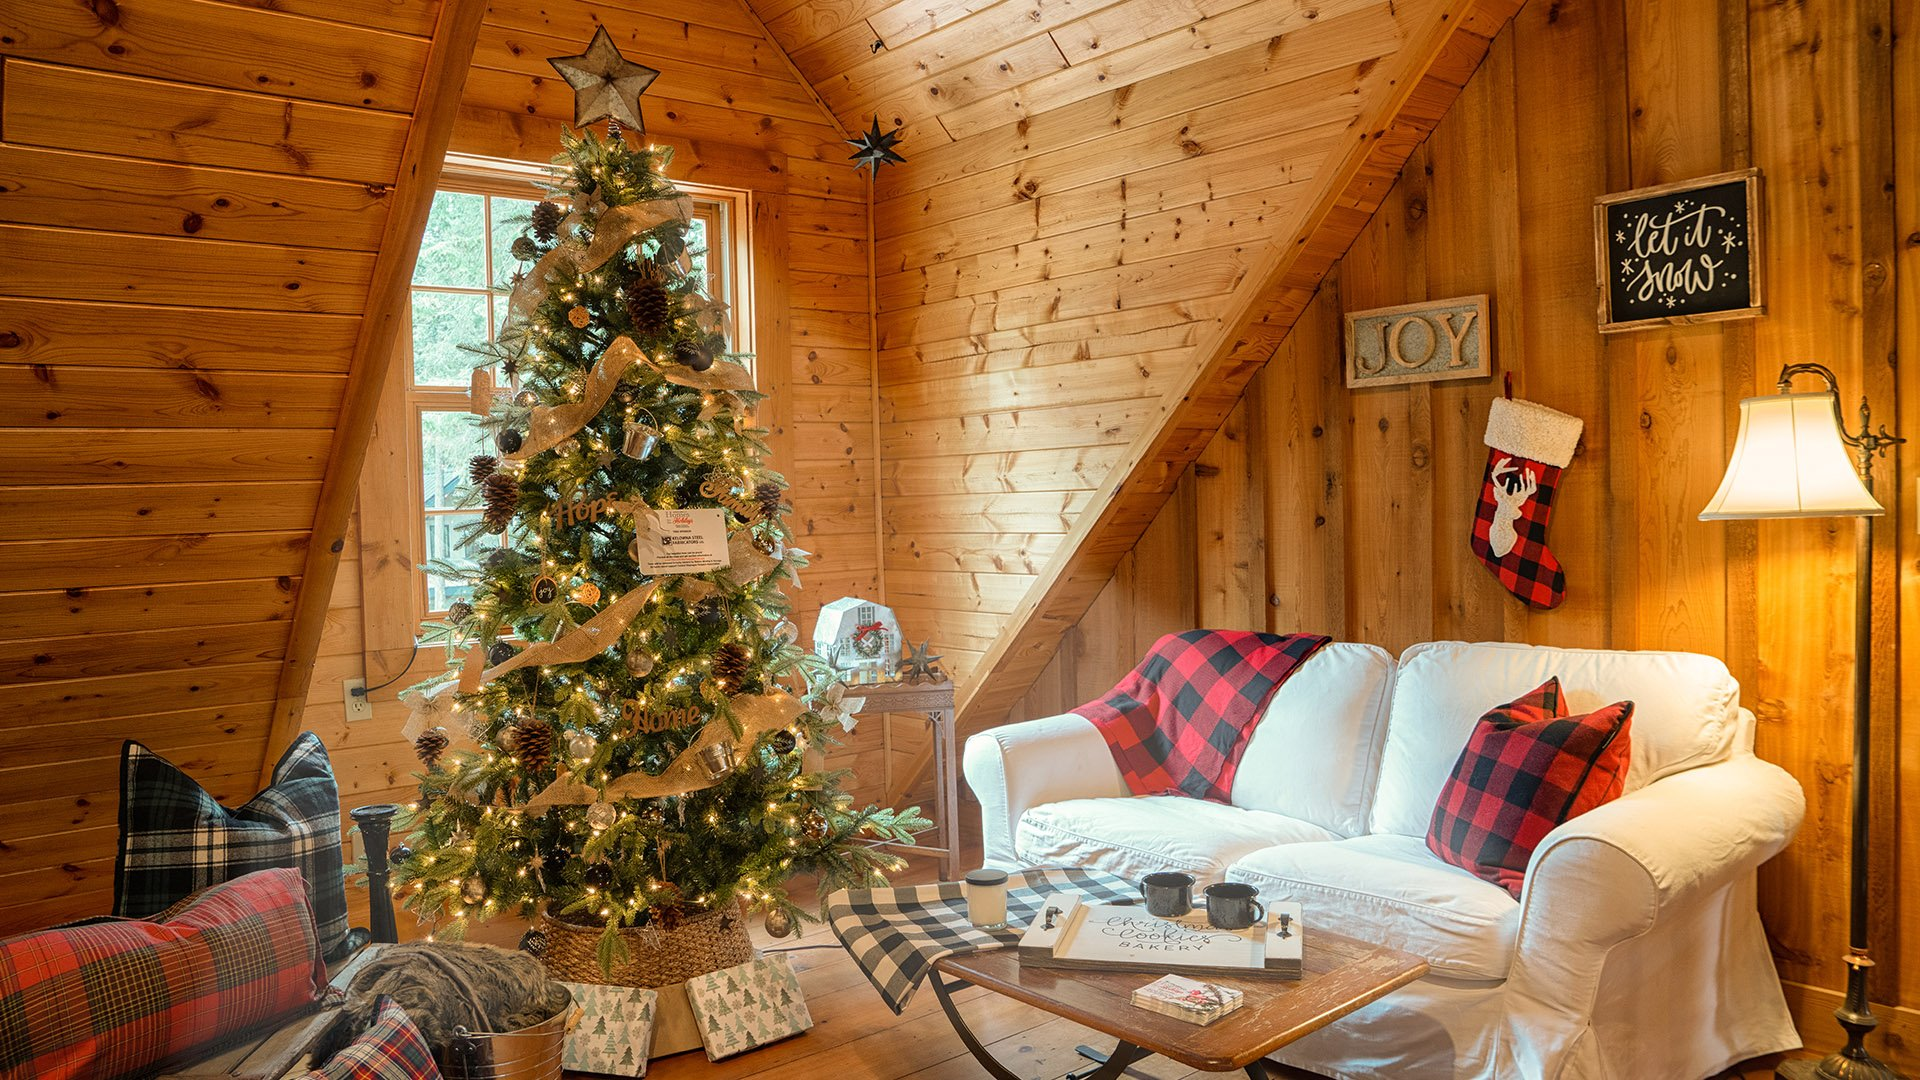 http://spatulamedia.ca/wp-content/uploads/2019/05/homes-for-the-holidays-second-floor-christmas-tree.jpg